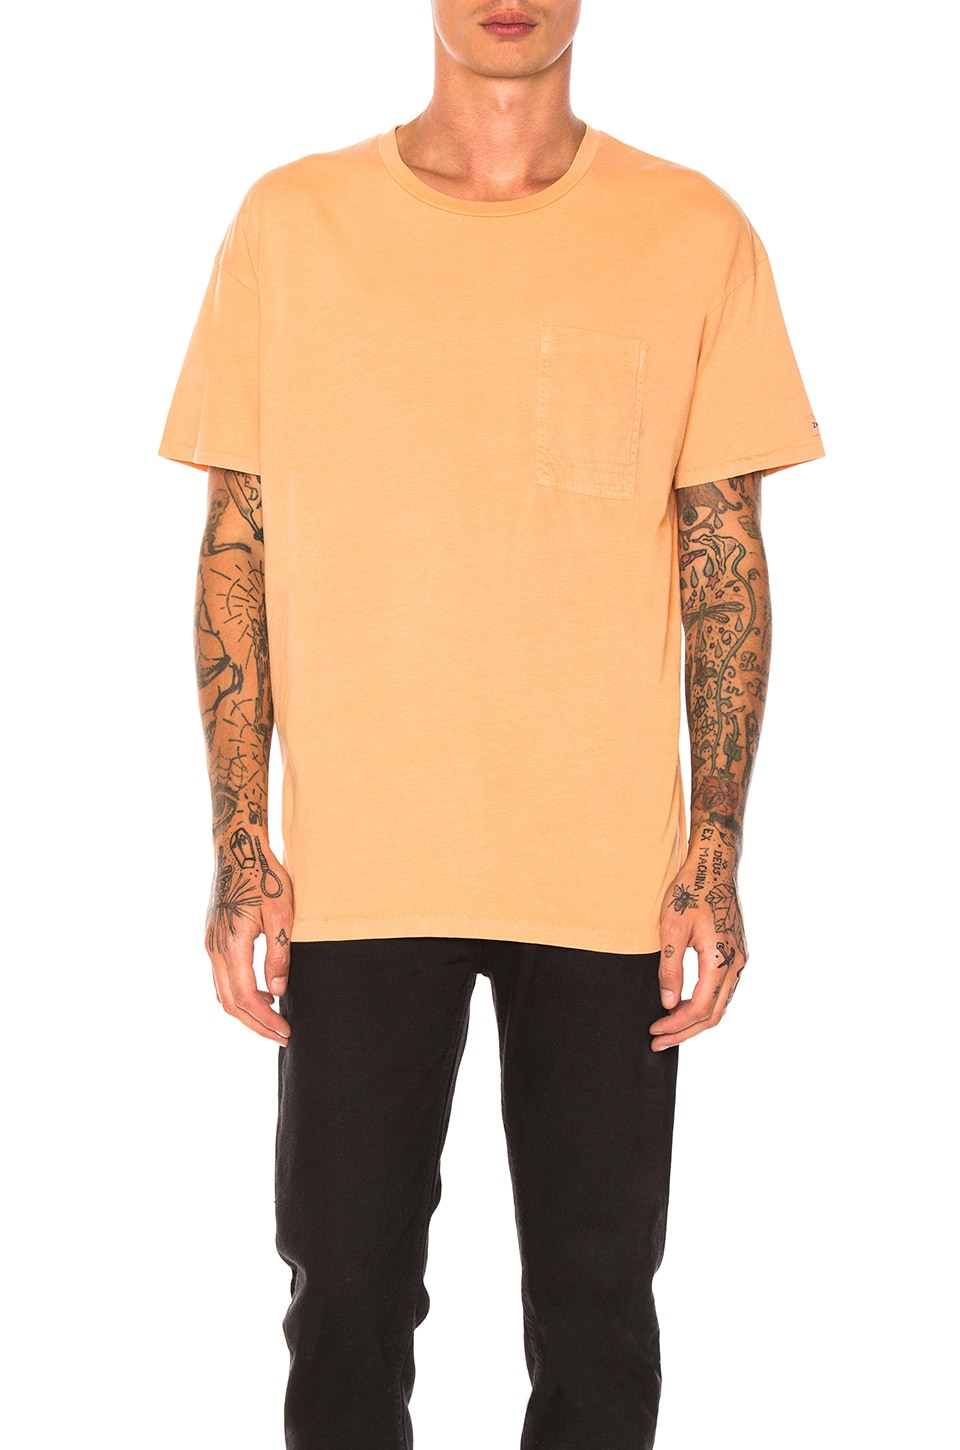 Rugger Pocket Tee by Zanerobe